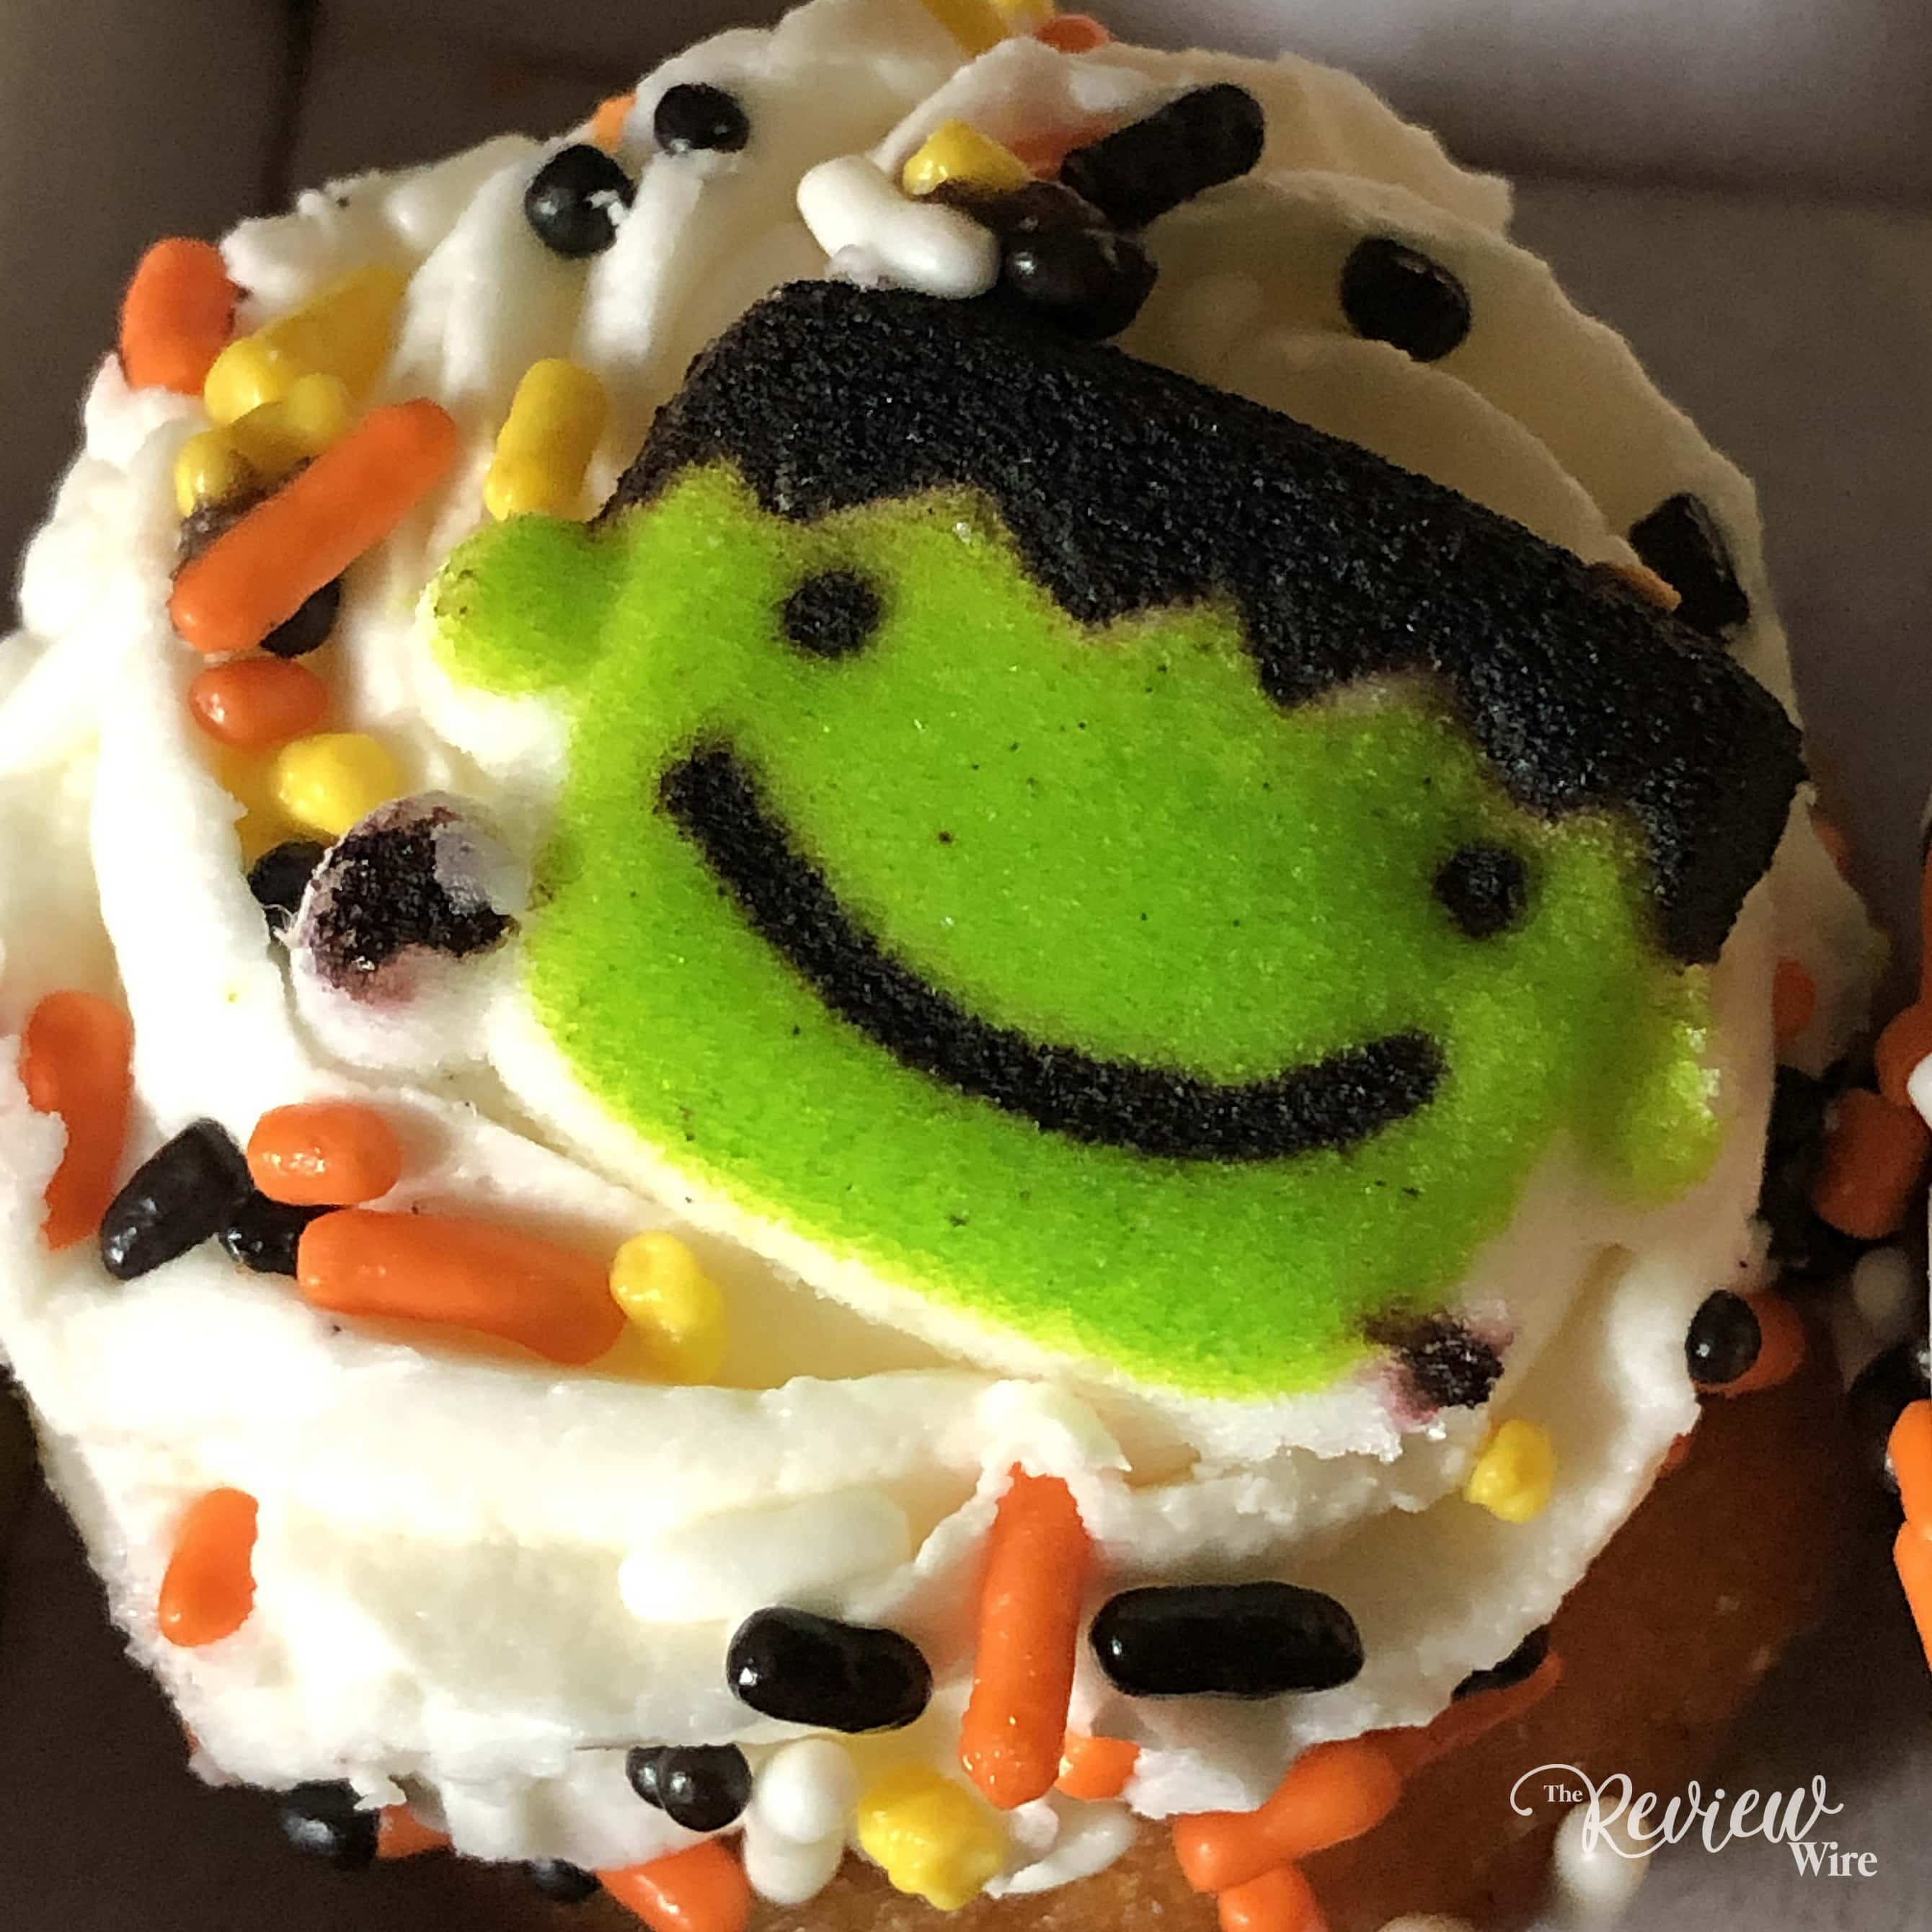 The Review Wire - Bake Me A Wish! Mini Halloween Cupcakes - Frankie